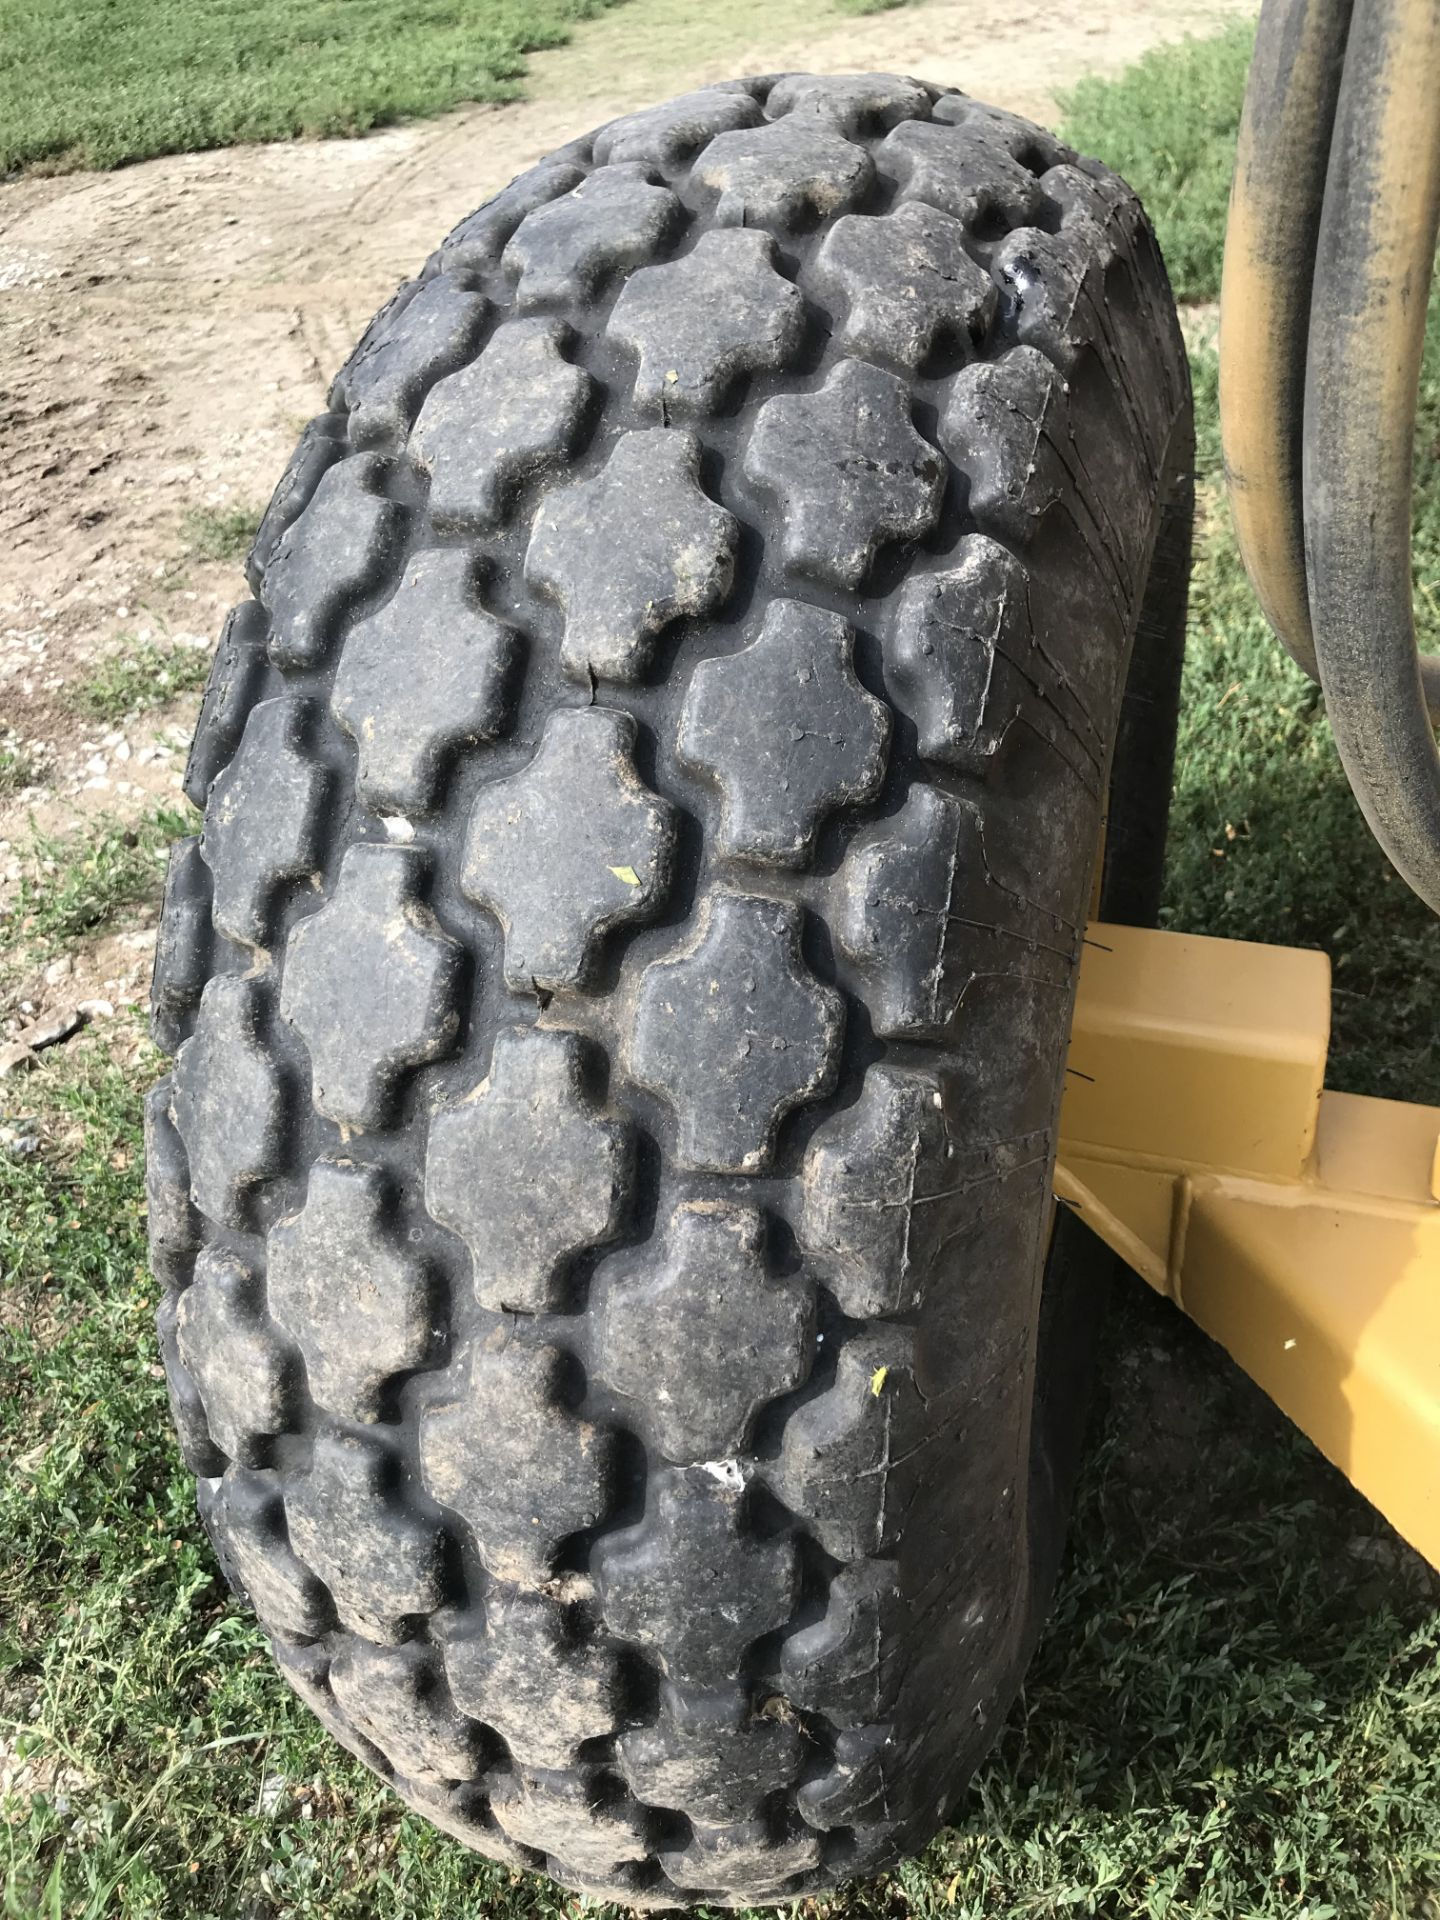 Lot 28 - 2012 Toreq 9000 S#9-4084, PT, 9 Yard w/HD Frost Blade, 16.9x24 Rears, 13.50-16.1 Front Tires, Like